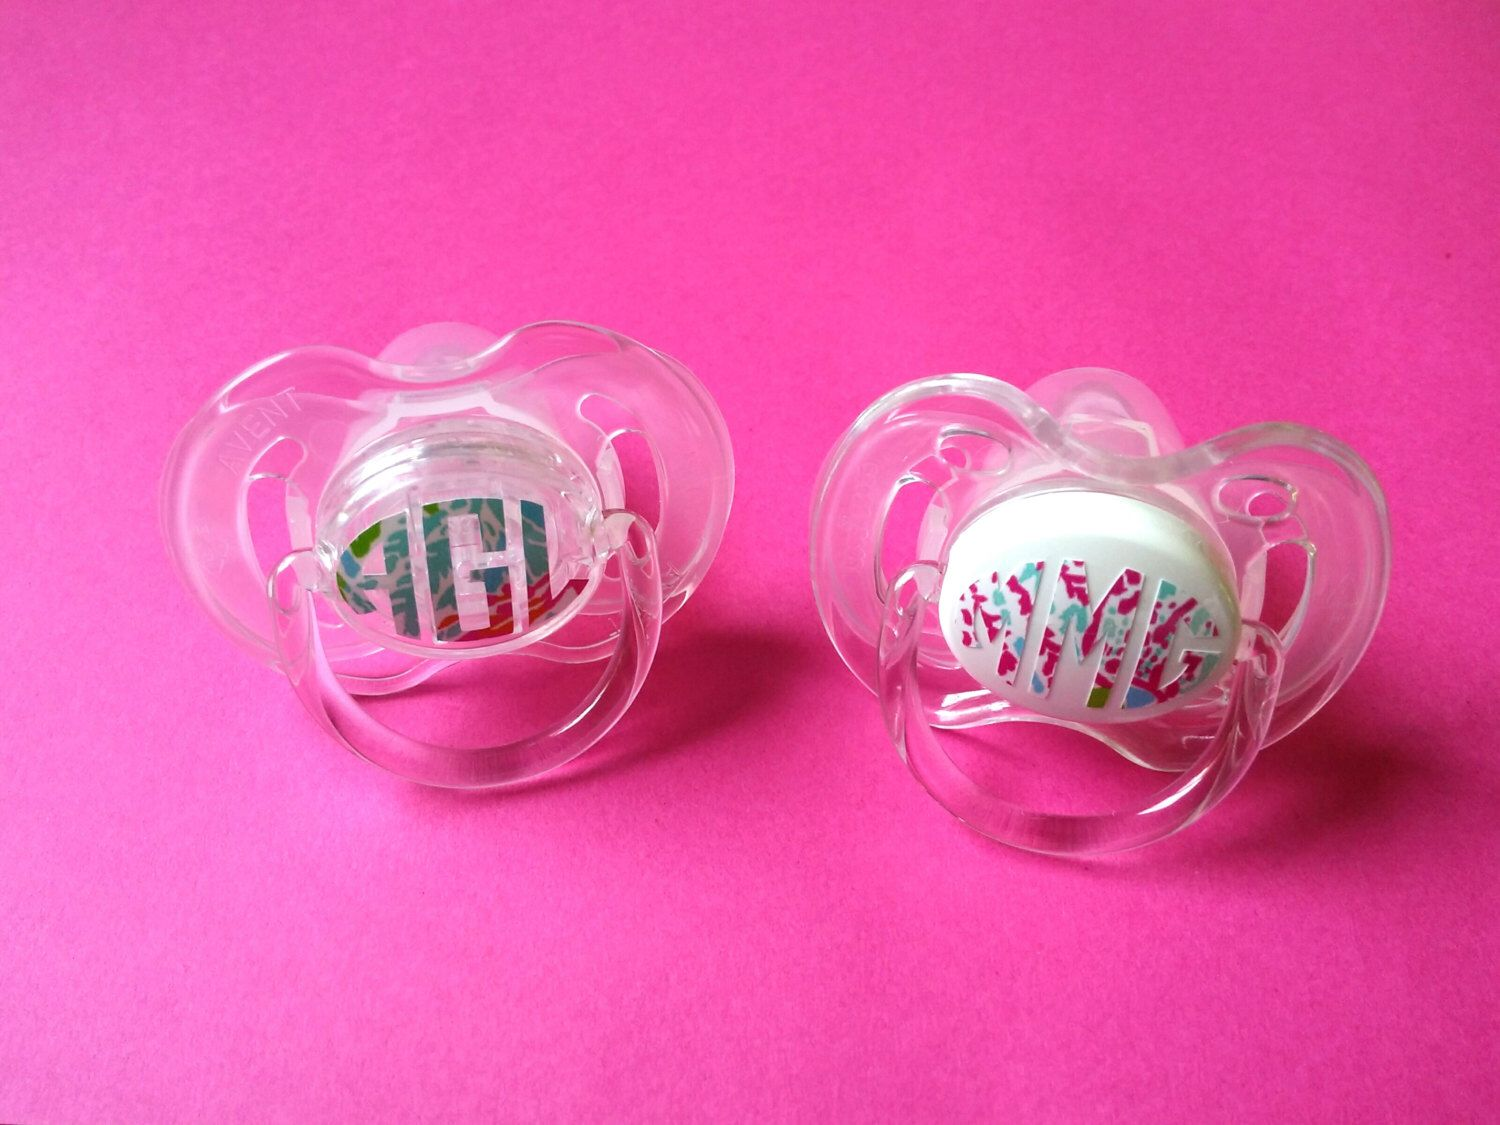 Monogrammed Pacifier-  personalized baby gift, baby girl gift, baby girl gift by InspiredByEmilyGrace on Etsy https://www.etsy.com/listing/238812793/monogrammed-pacifier-personalized-baby